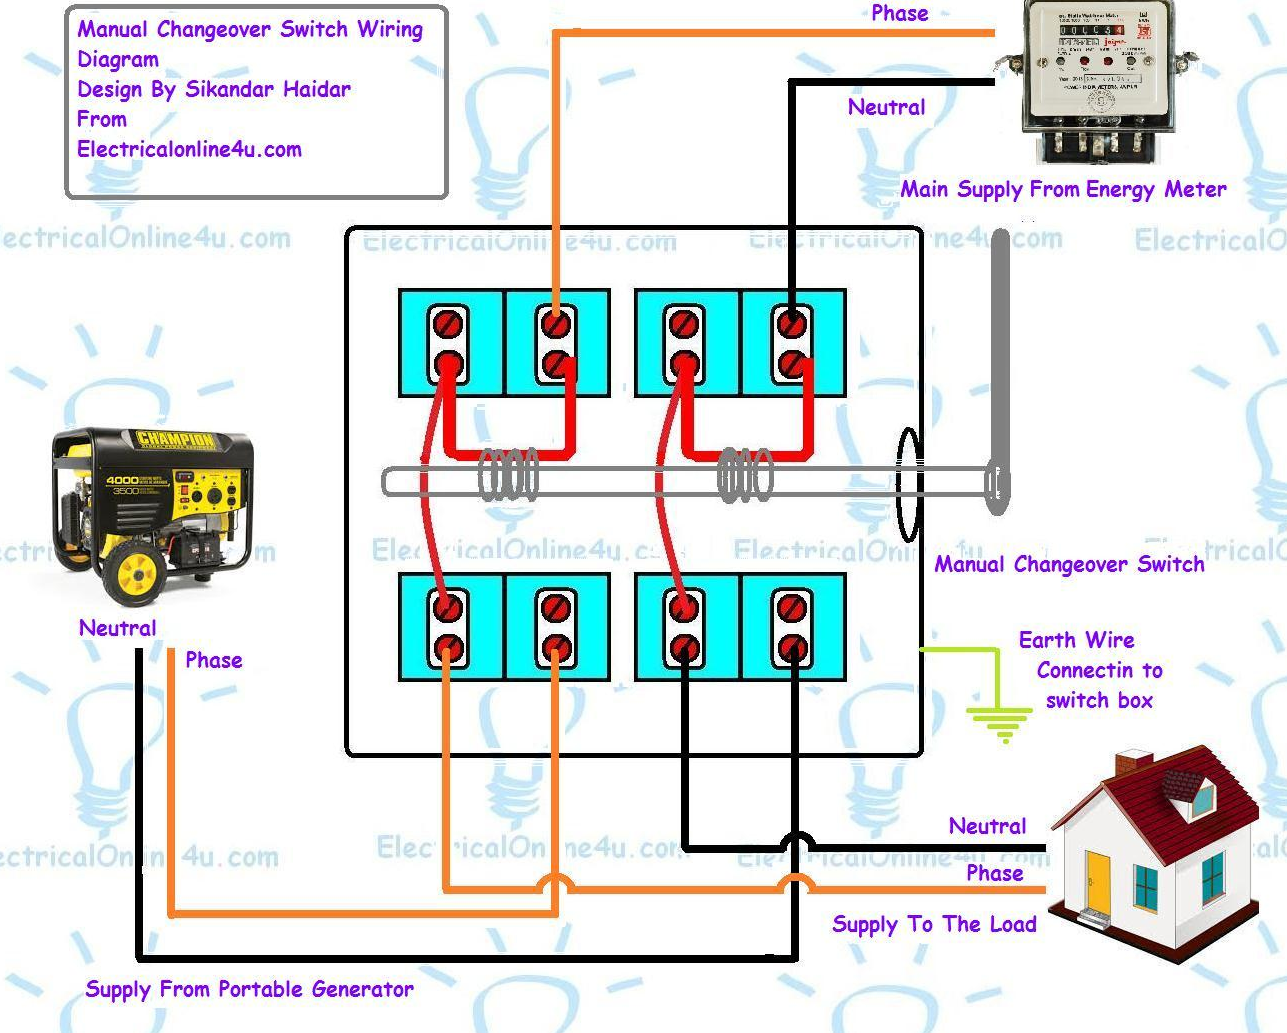 manual%2Bchangeover%2Bswitch%2Bwiring%2Bdiagram distribution board wiring for single phase wiring electrical electrical distribution board wiring diagram at soozxer.org